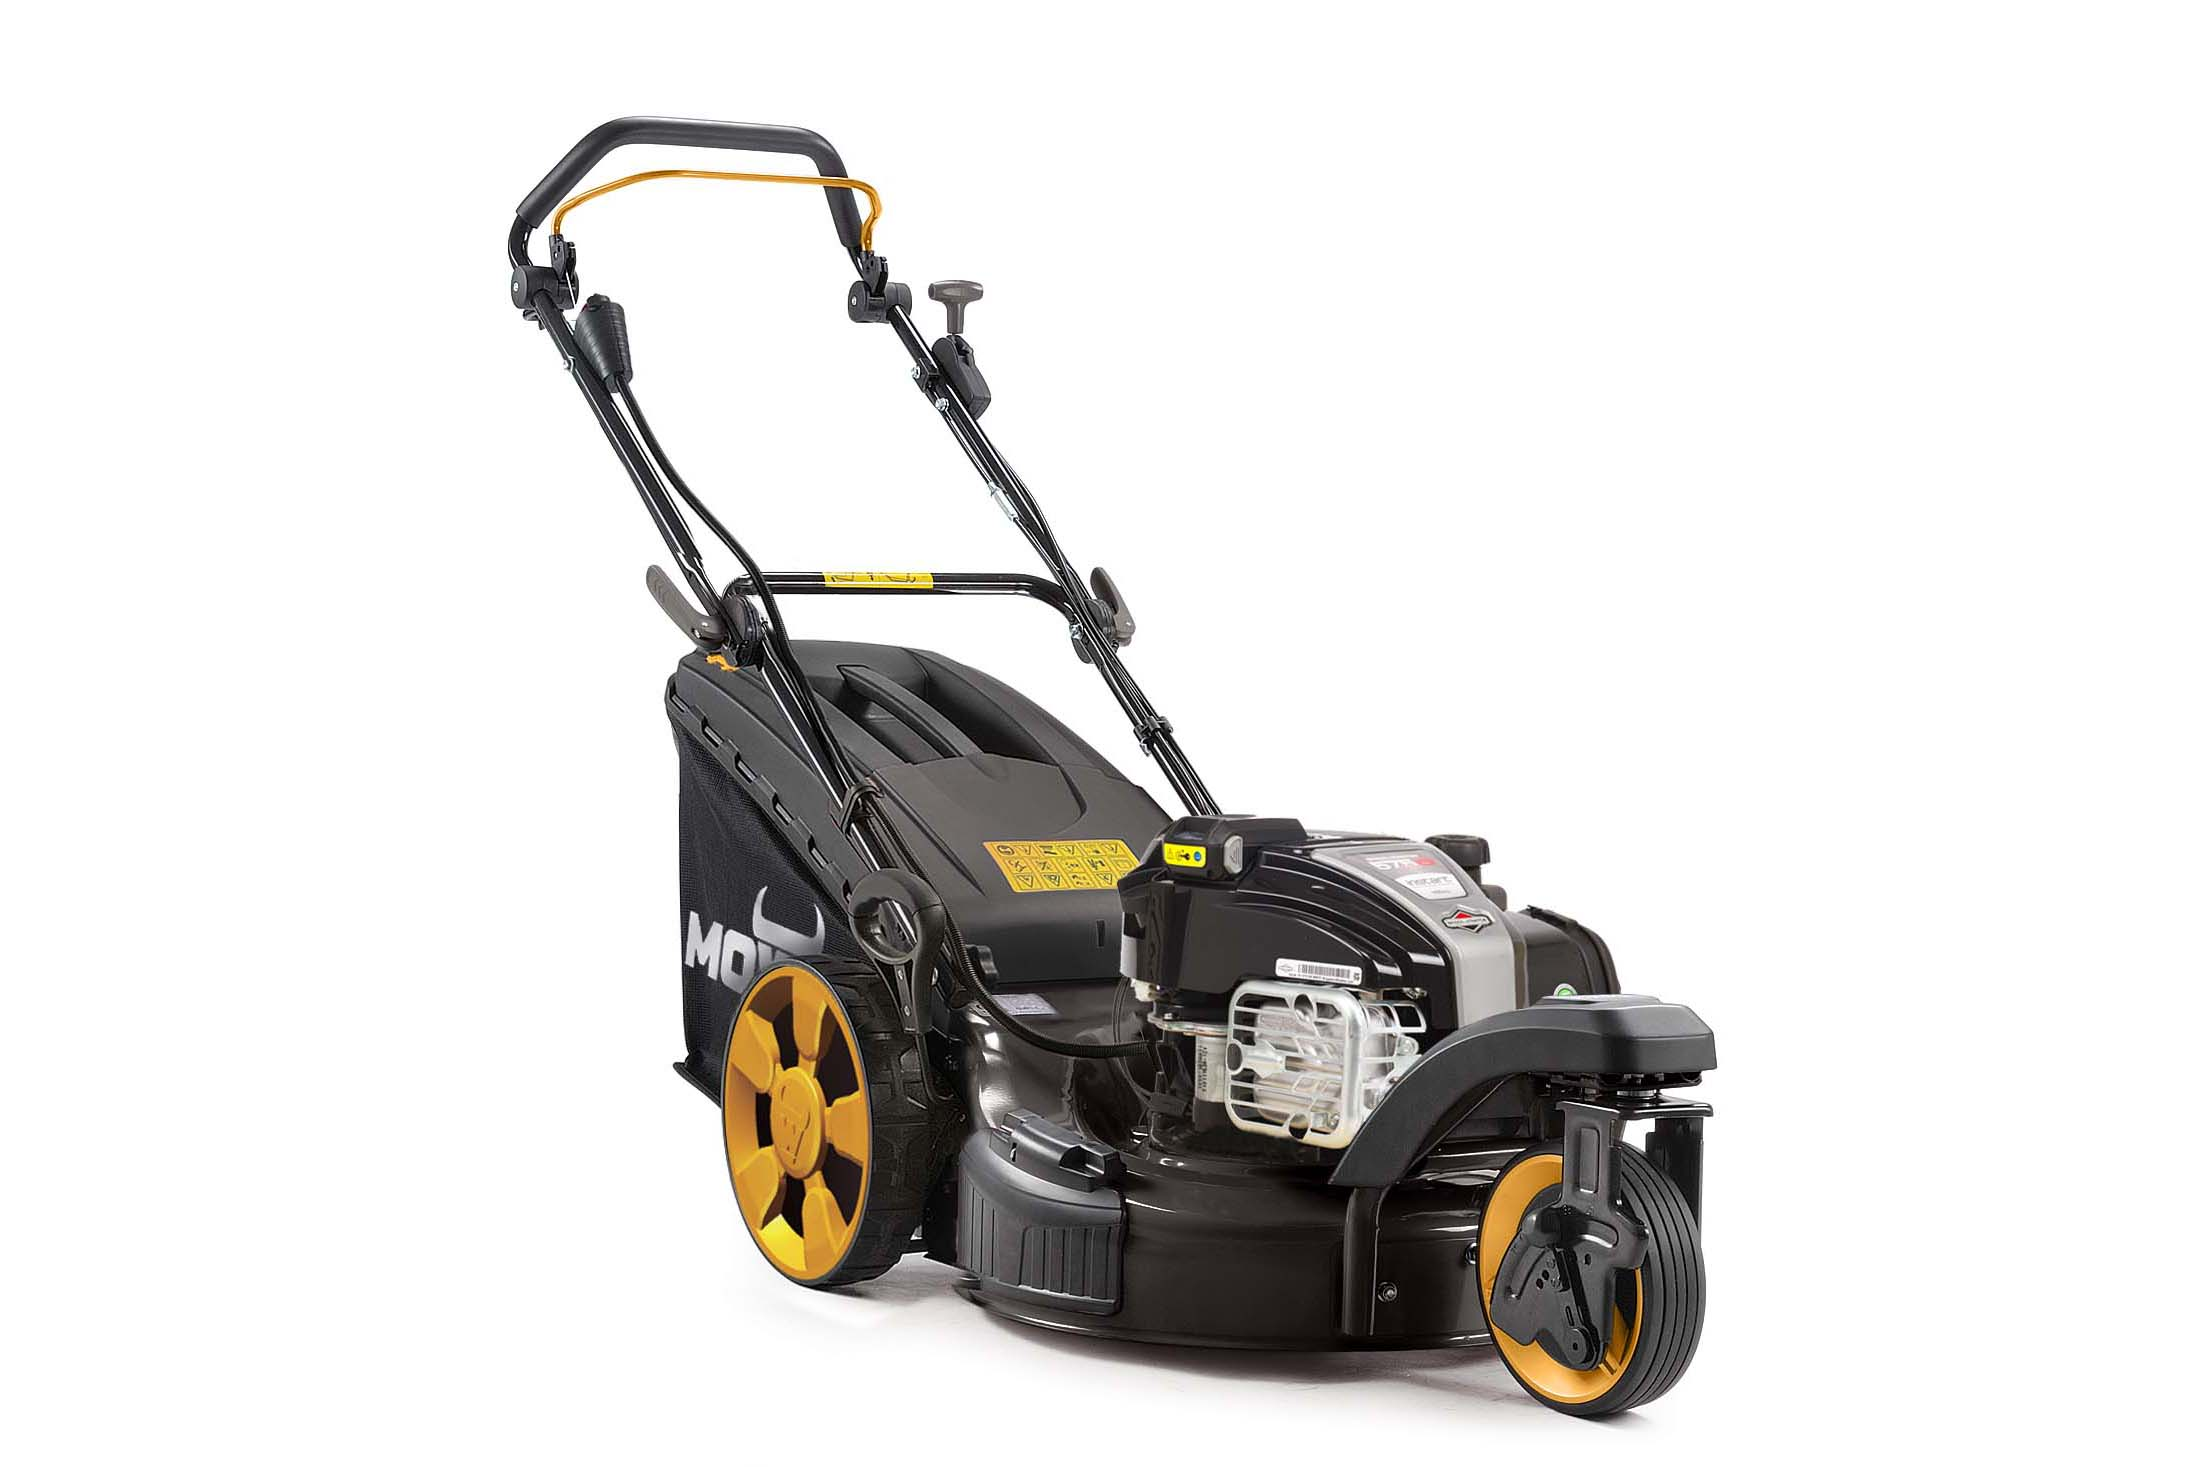 Mowox Zero-Turn Lawn Mower